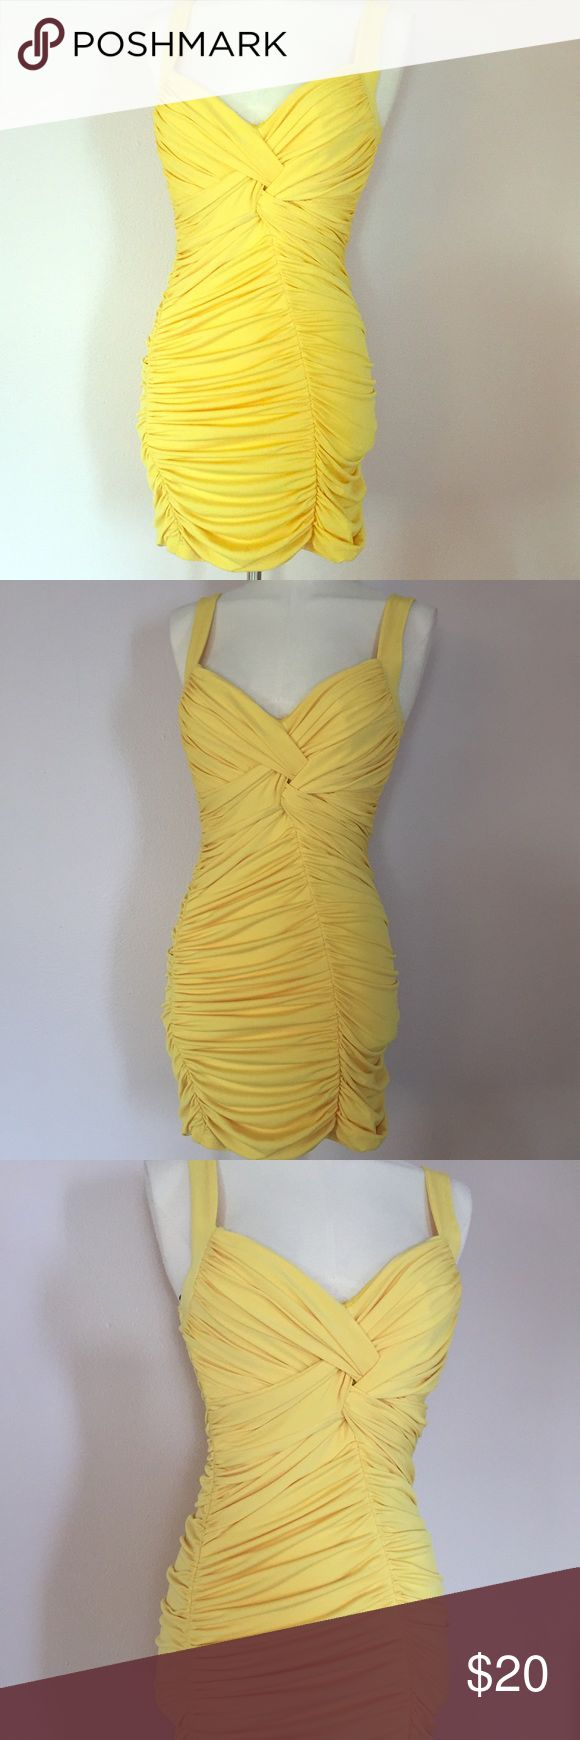 """Pinup Sexy Yellow Bodycon Mini Dress Retro Club S Super sexy pinup dress in sunshine yellow. Dress hugs every curve, and has a flattering fit. Worn and washed once, dress is in like new condition with tons of life left. Has a padded bust, and is made of poly spandex. Tagged a size small and measures 34"""" at bust, 28"""" at waist, 36"""" at hips, and length from underarm to hem is 26"""". Love Dresses Mini"""